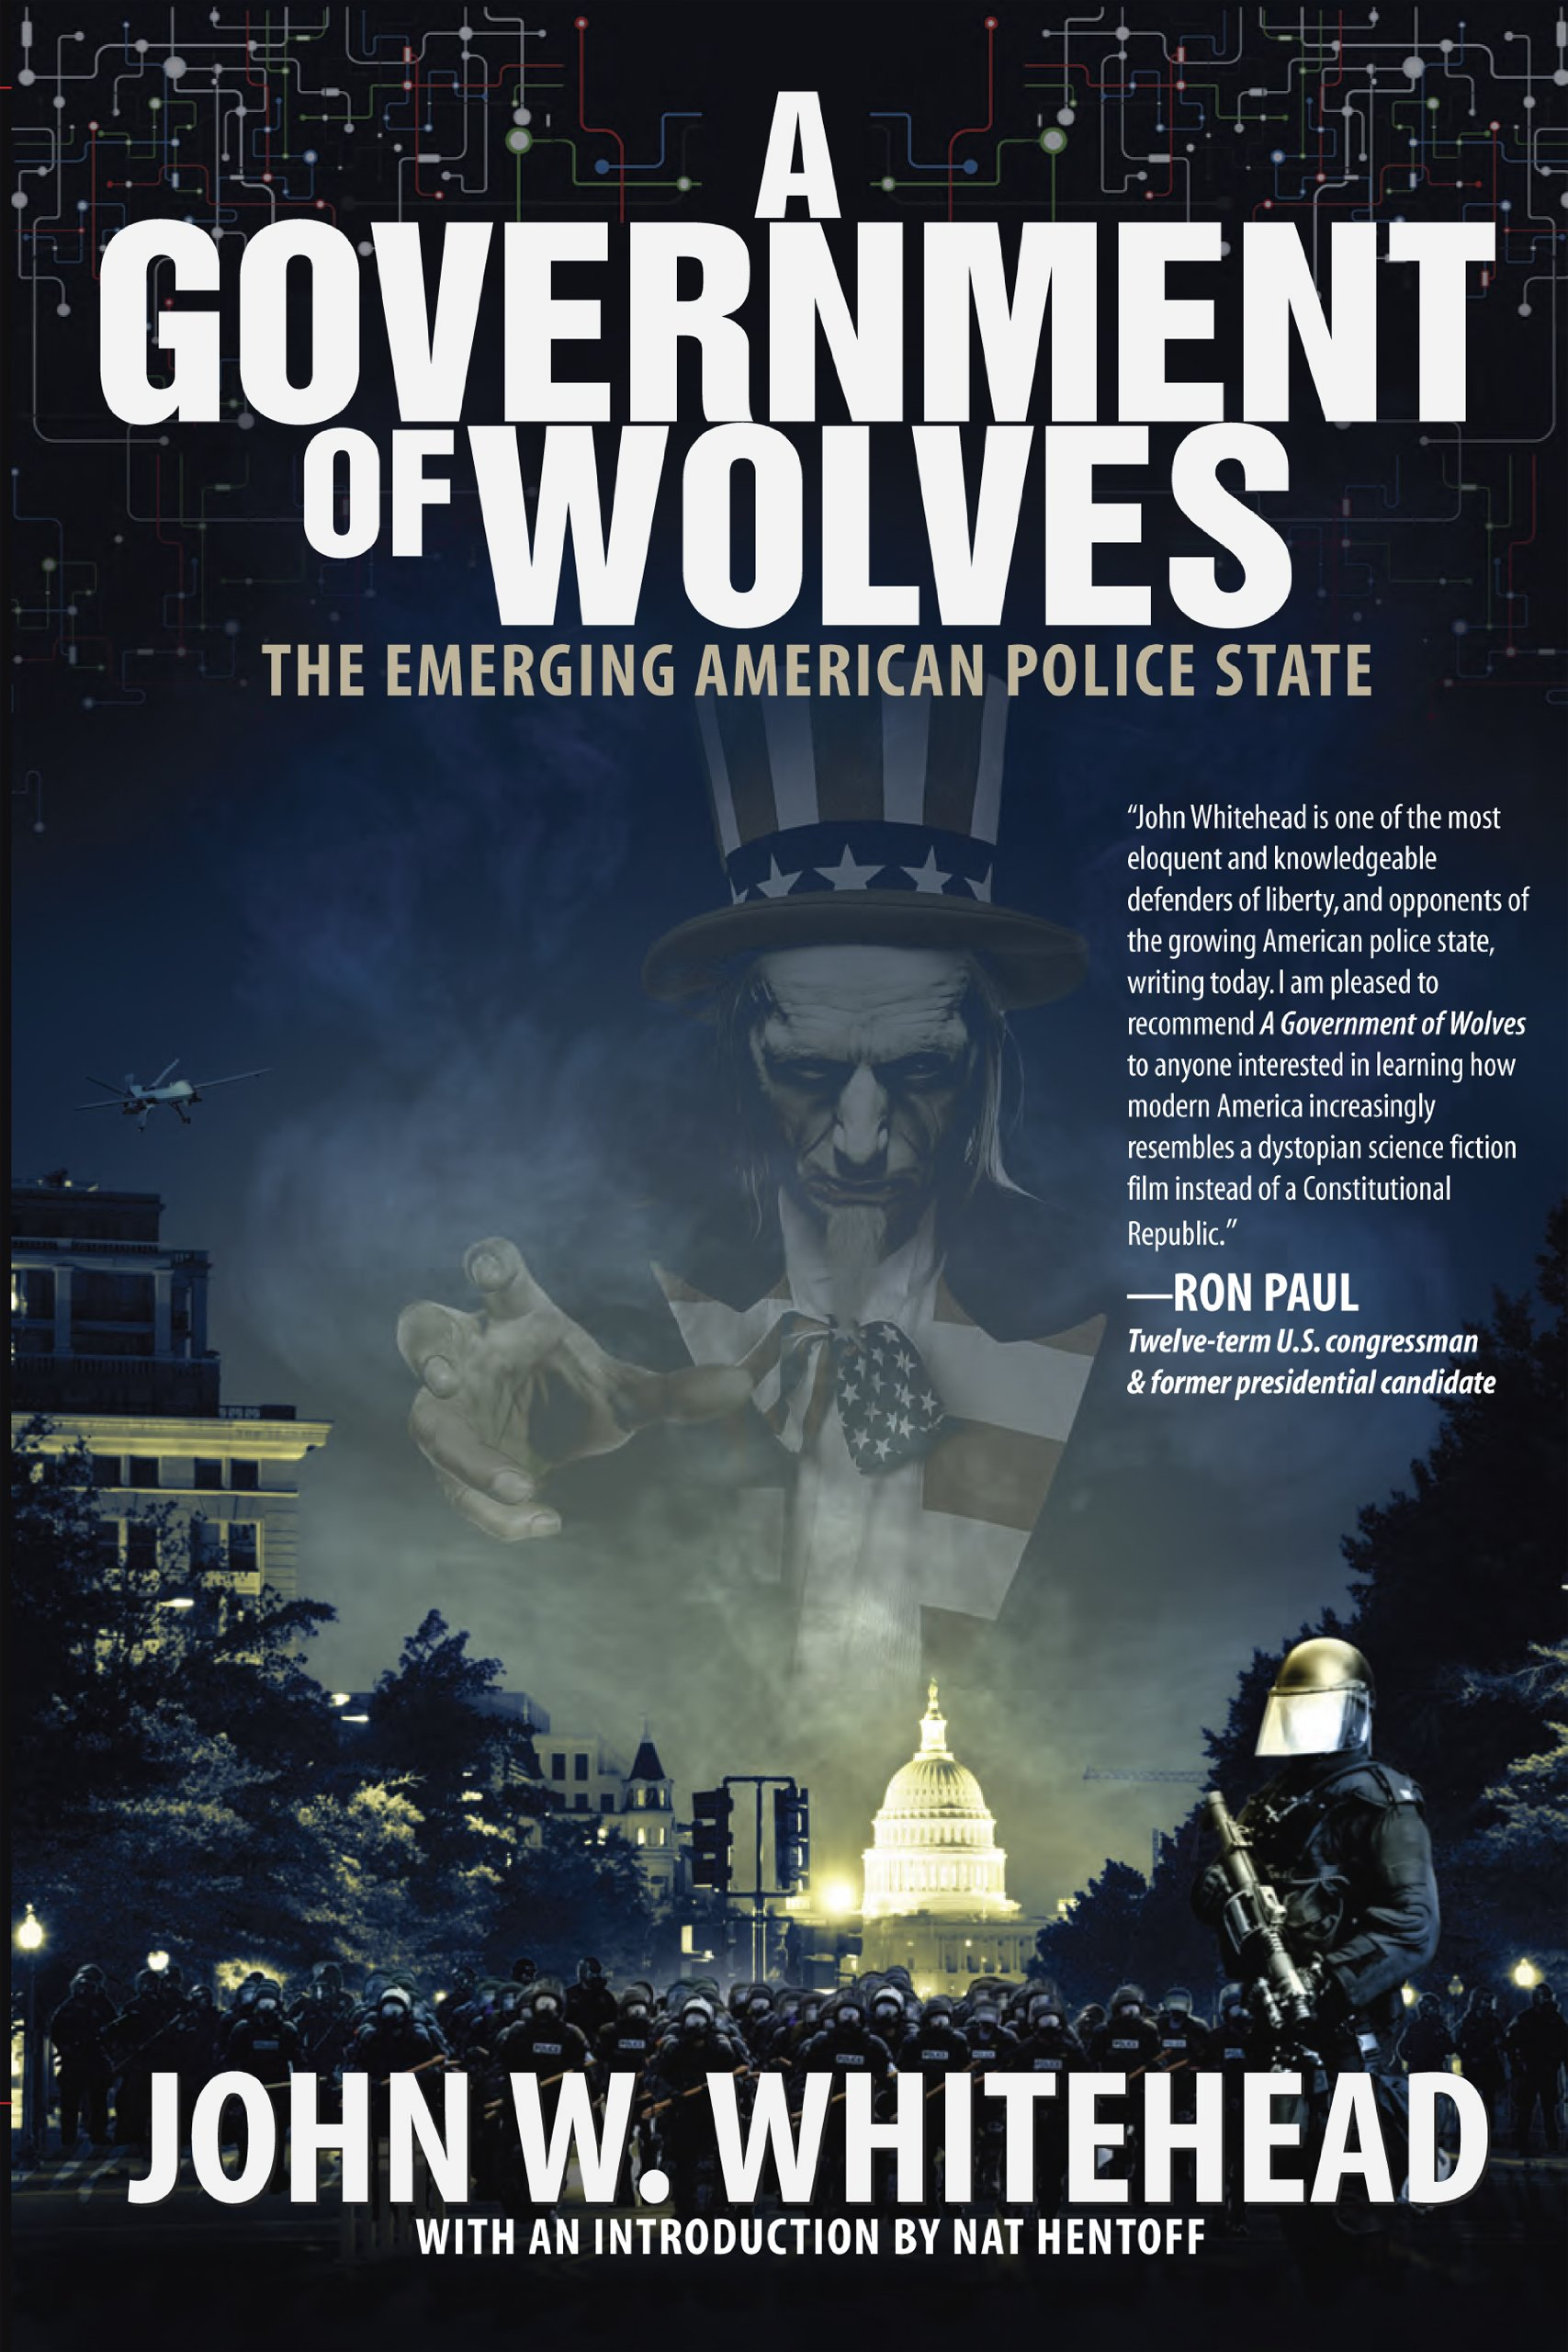 A Government of Wolves, by John Whitehead